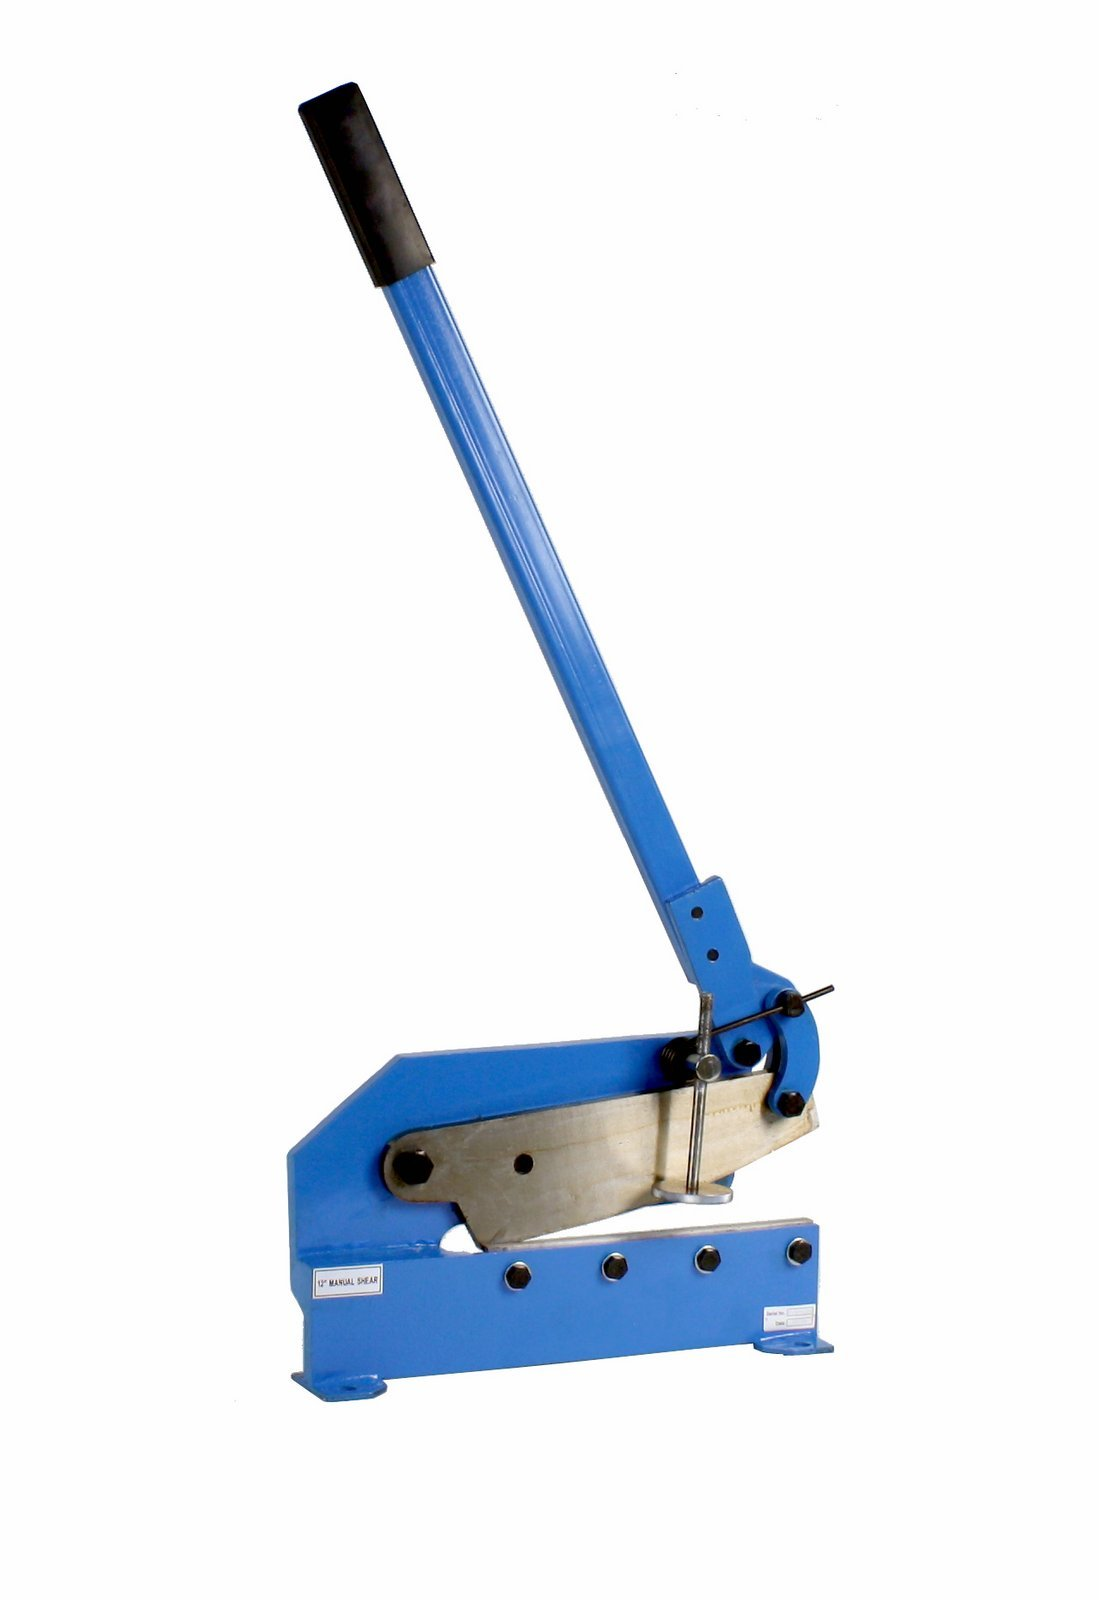 Erie Tools 12'' Mounting Benchtop Manual Hand Plate Shear Cuts Sheet Metal, Rebar, and Round Stock Cutter